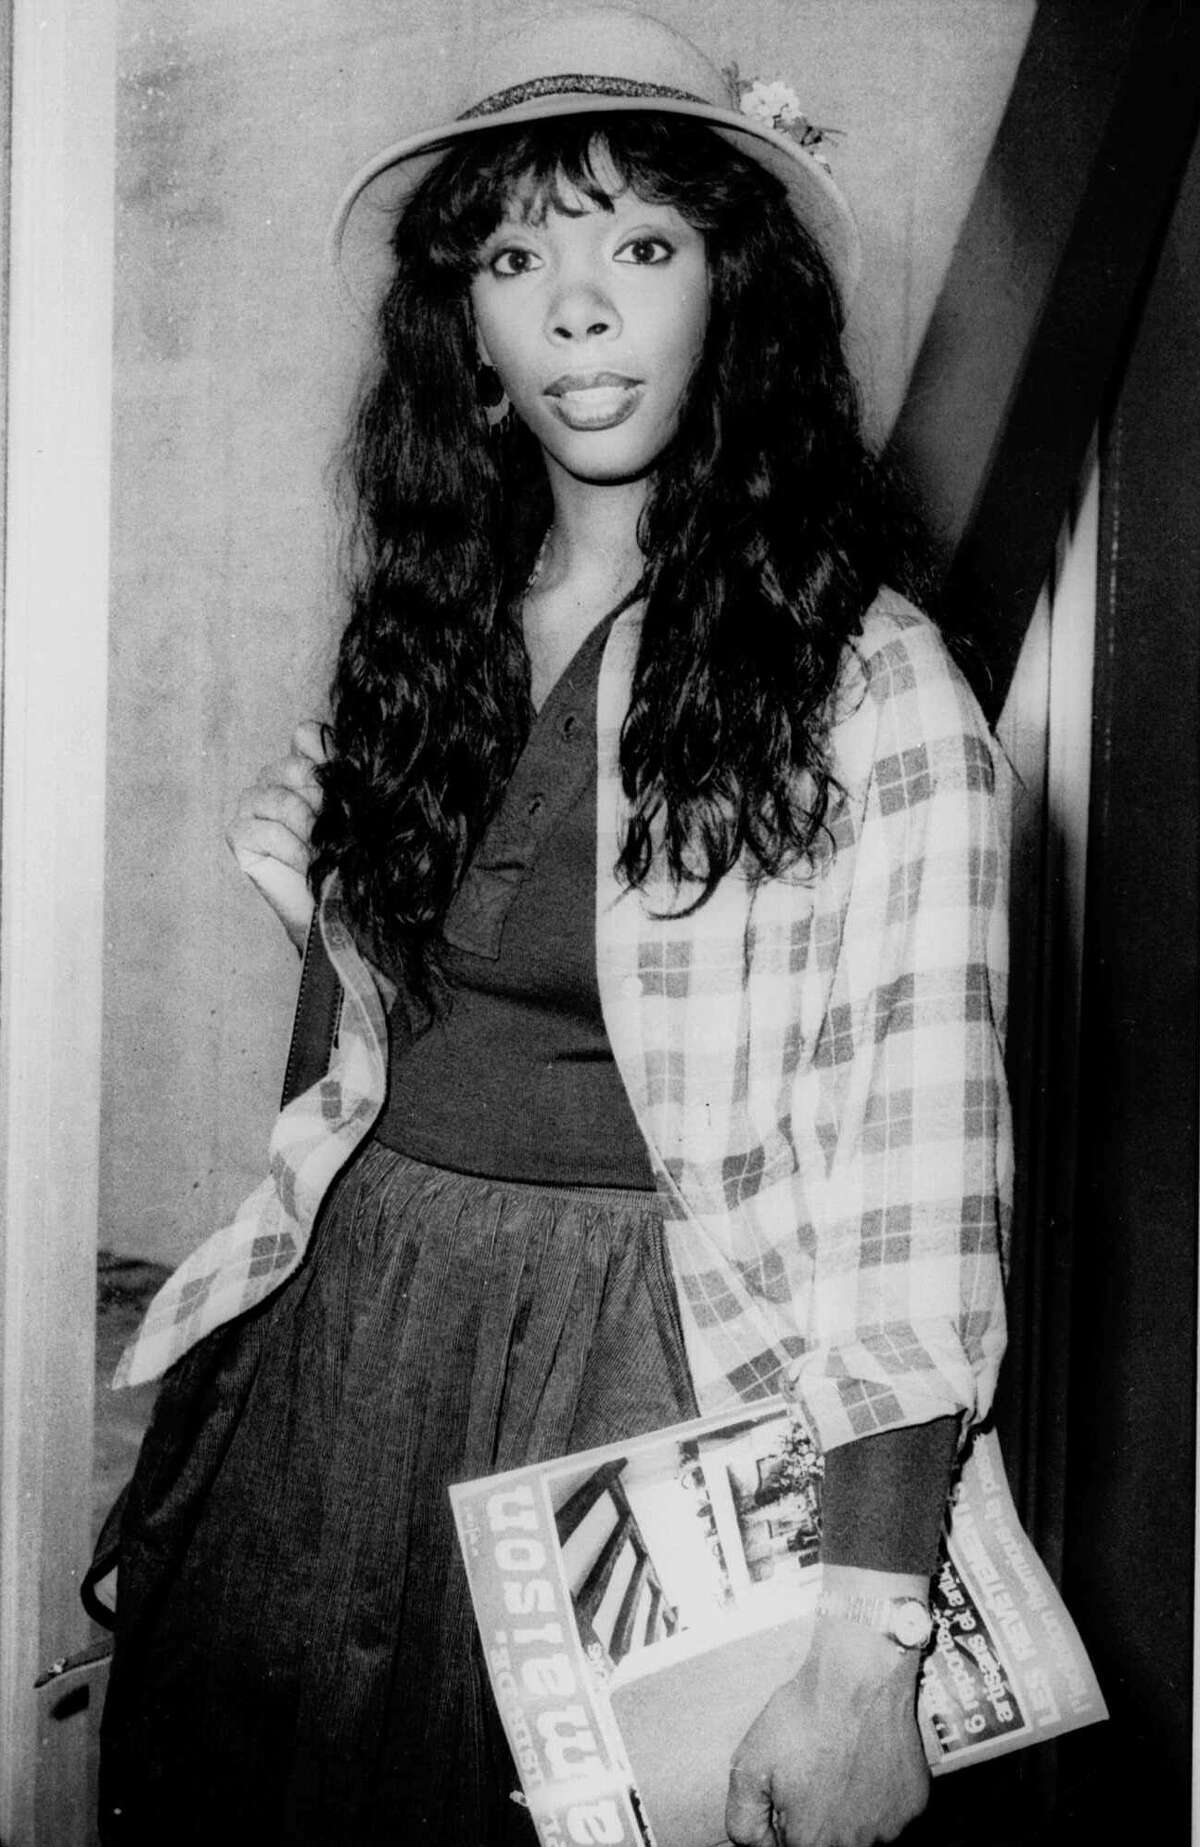 FILE - In this Oct. 21, 1977 file photo, Donna Summer, 27, arrives at Heathrow Airport from Paris. Summer, the Queen of Disco who ruled the dance floors with anthems like